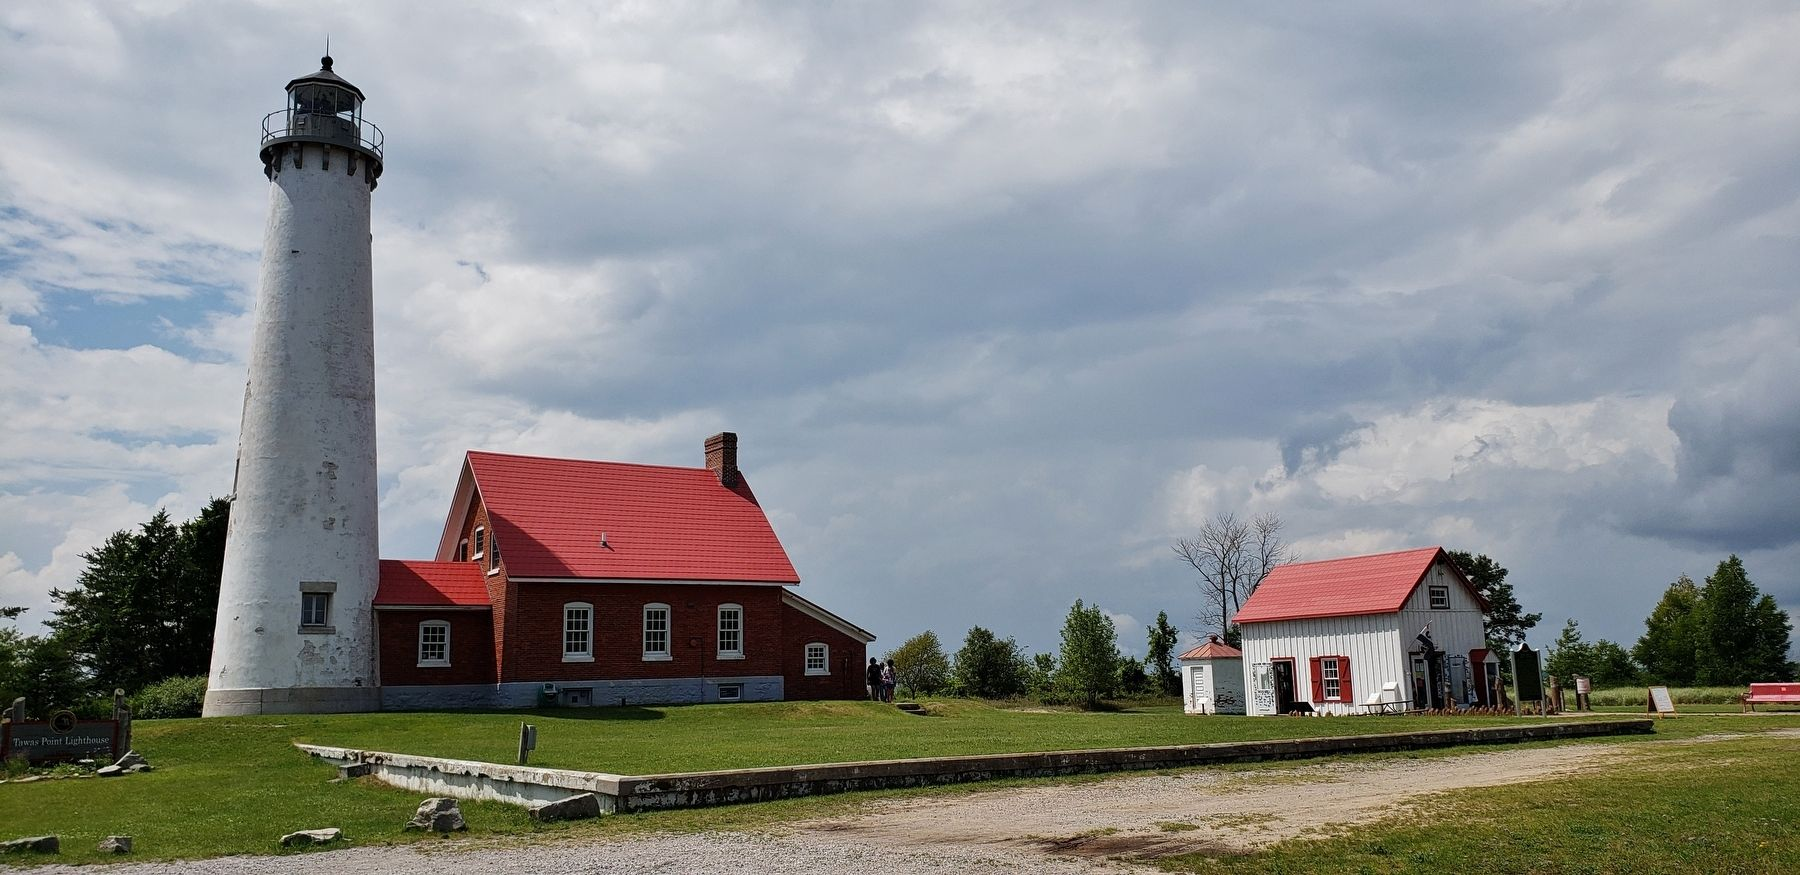 Tawas Lighthouse (<i>wide view</i>) image. Click for full size.